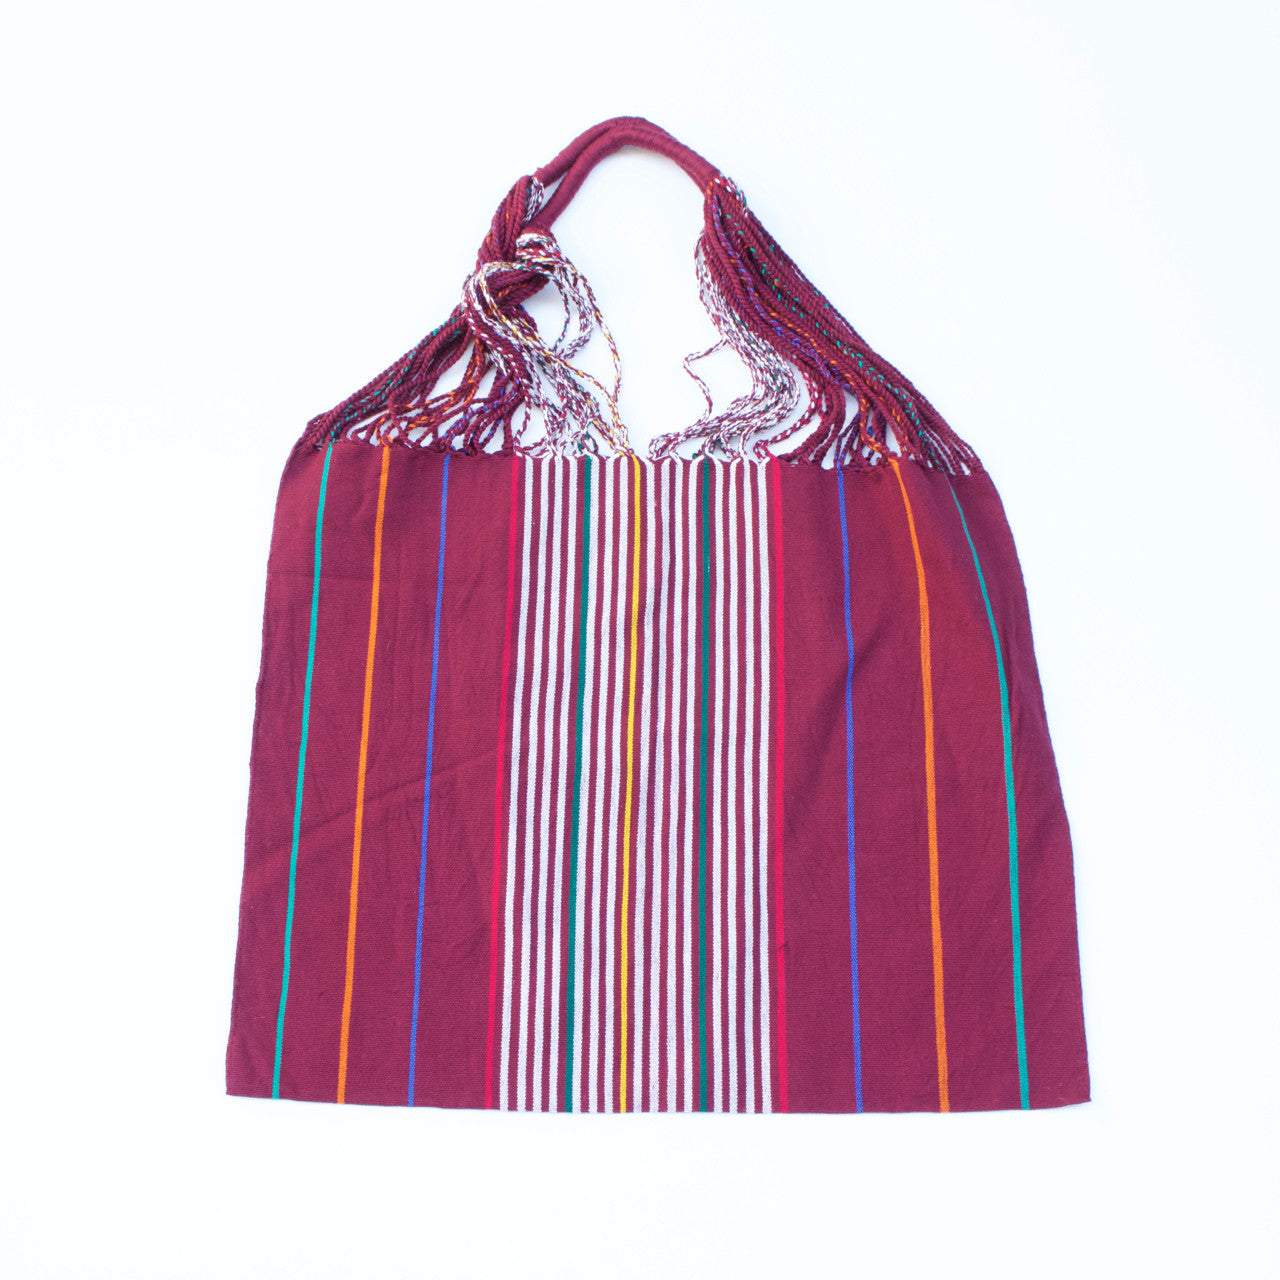 Raya Shoulder Bag  Shoulder Bag Burgundy - Cielo Collective handmade with tradition creativity and integrity